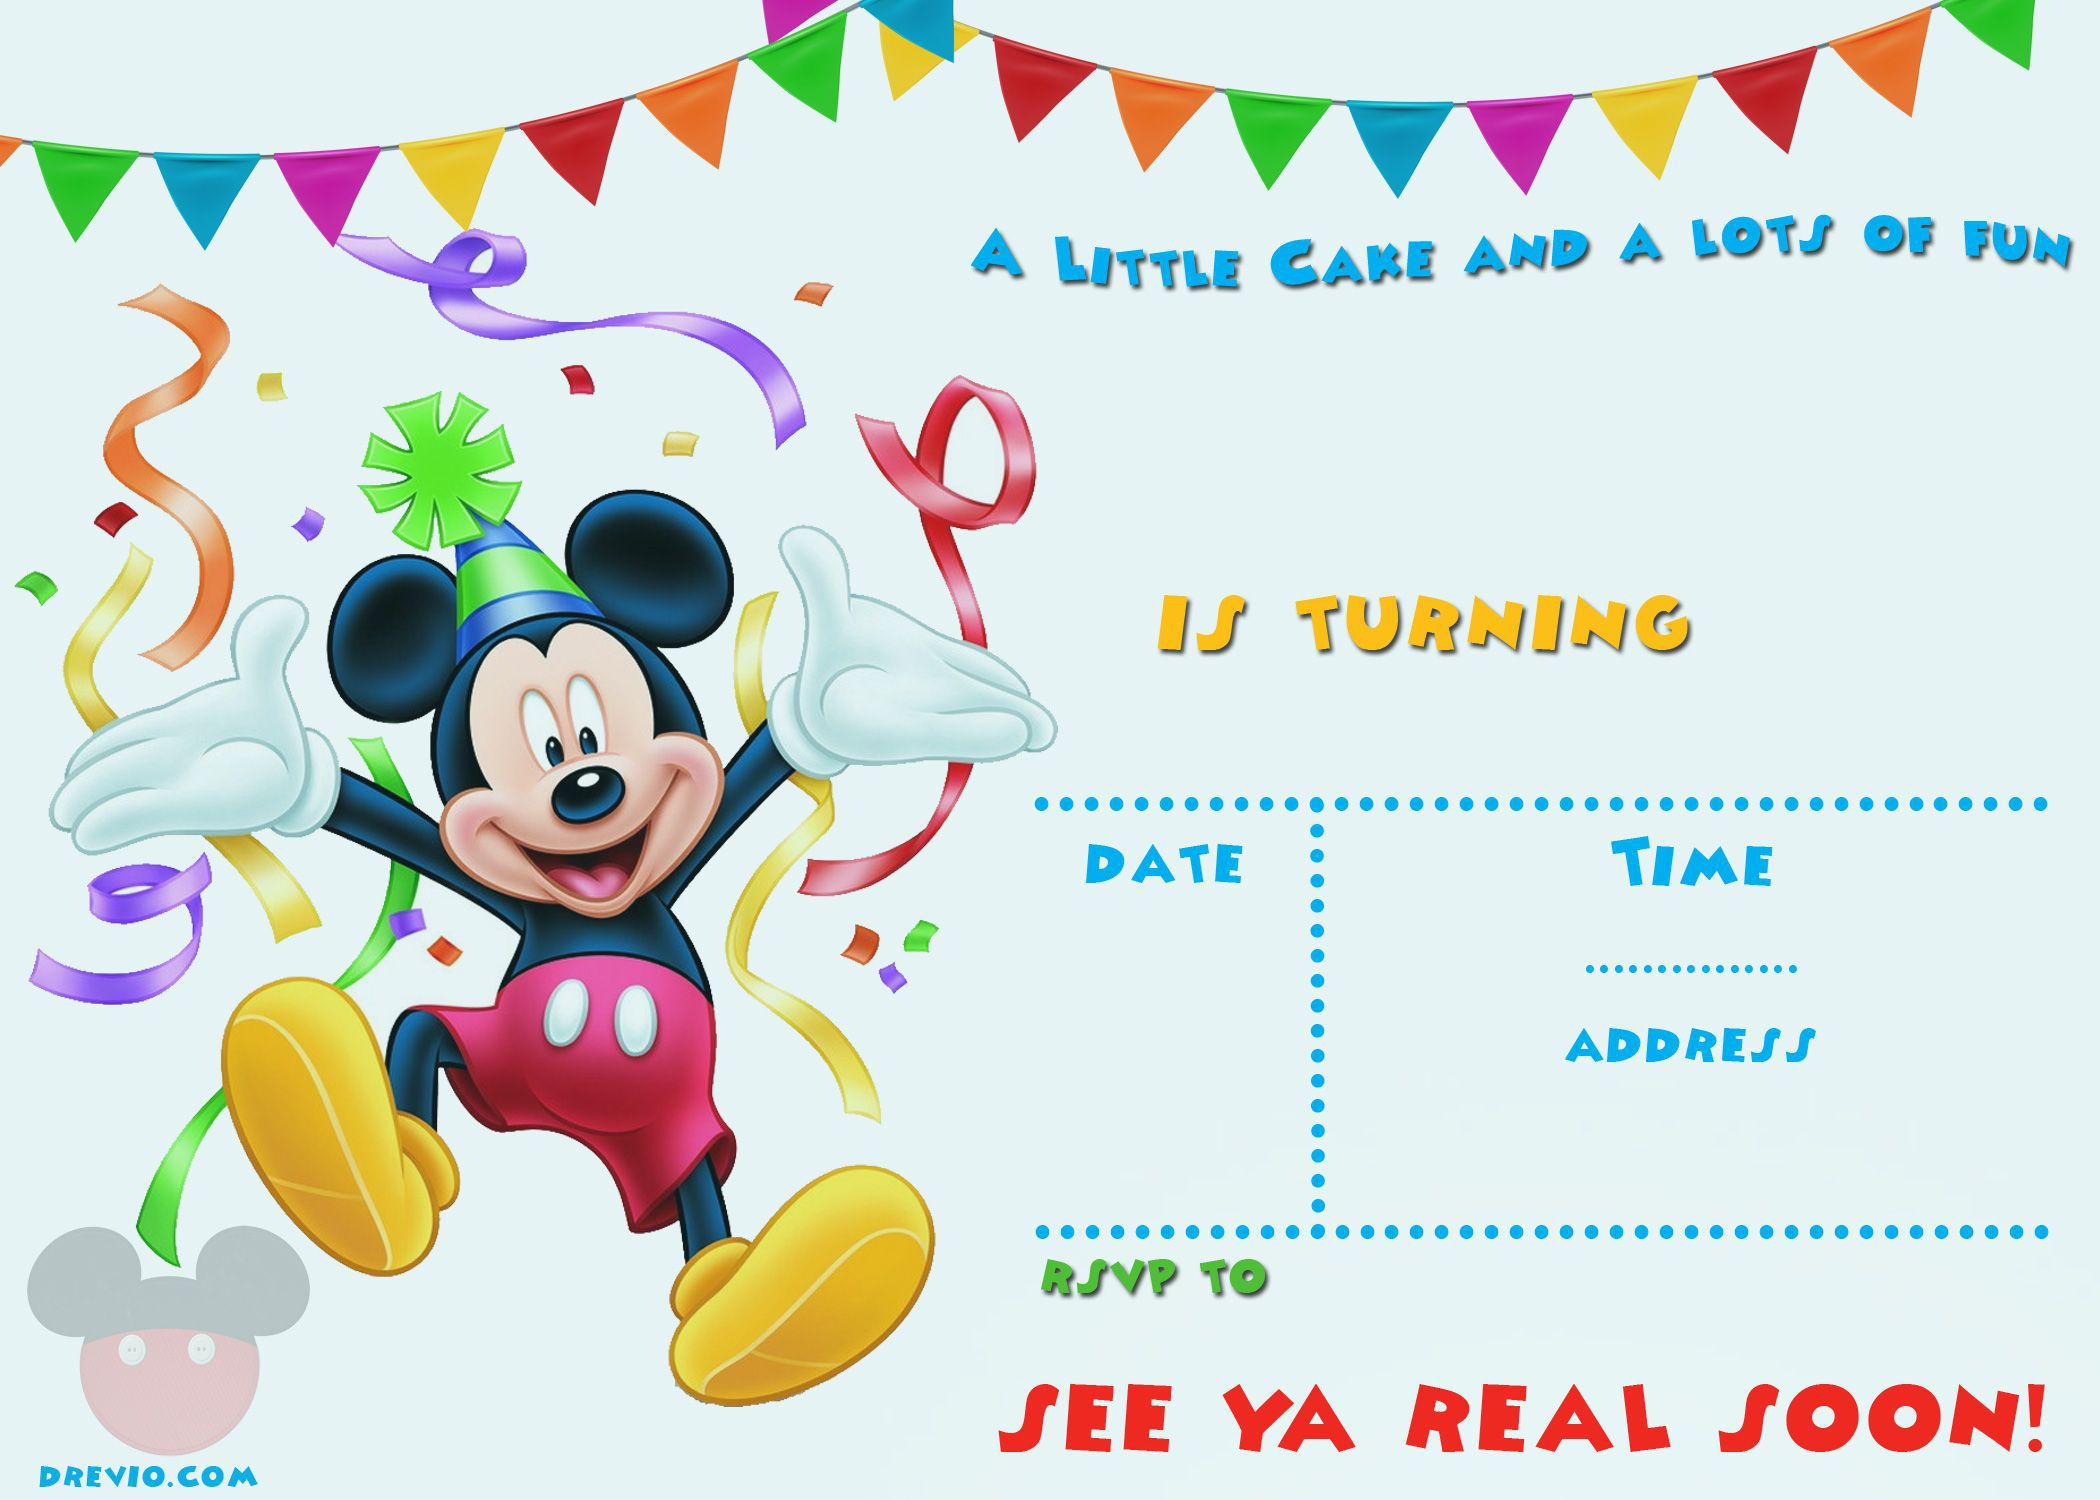 004 Surprising Mickey Mouse Invitation Template Image  Free Diy 1st Birthday Baby DownloadFull